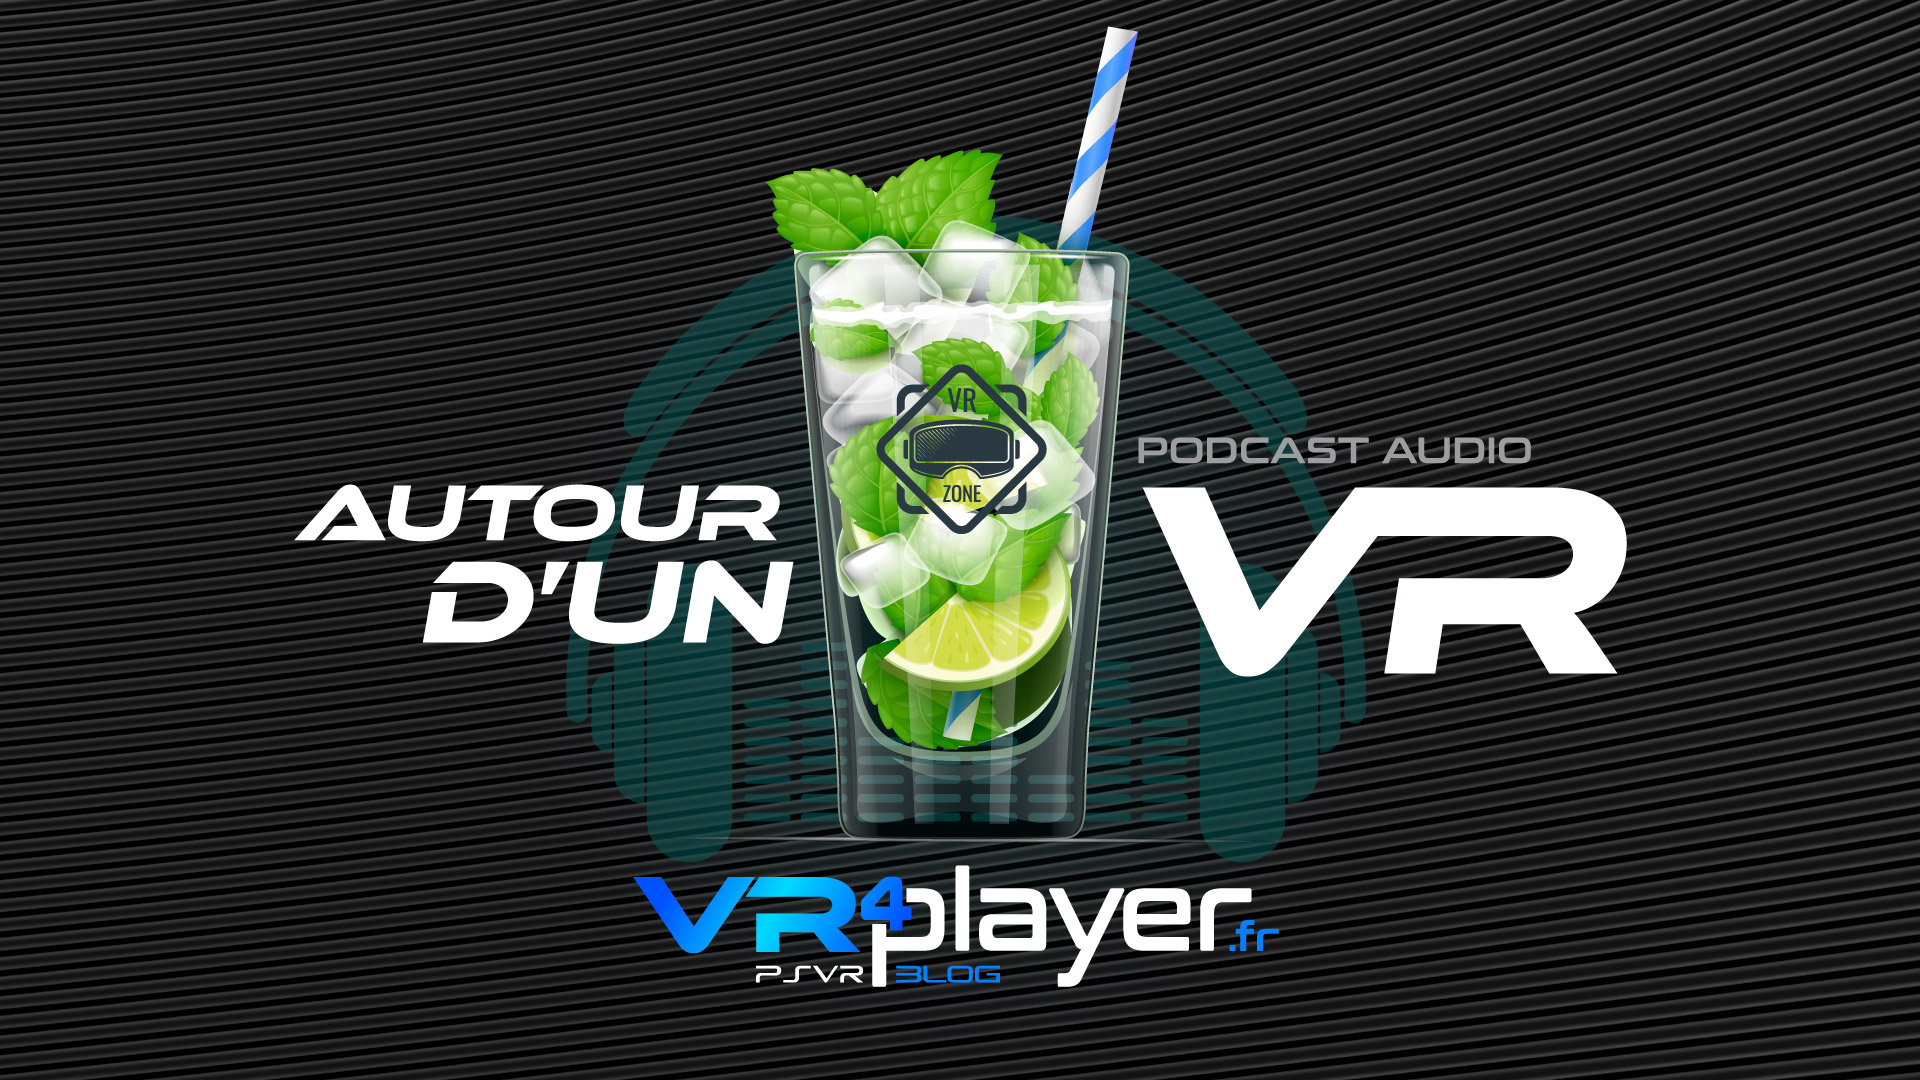 VR4Player - Podcast Audio - Autour d'un VR